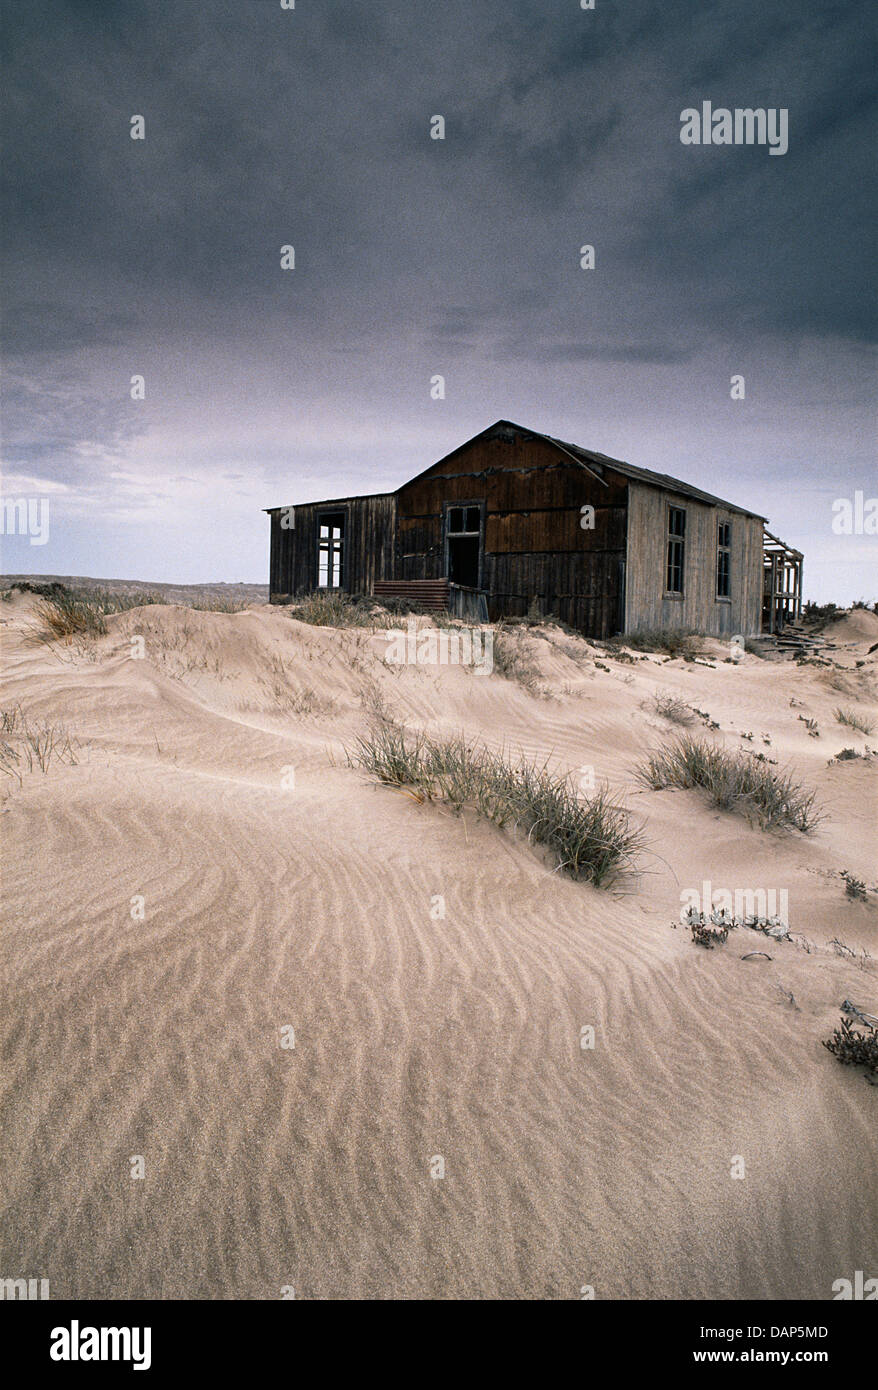 A old abandoned diamond dwellers house in the Namib desert, Namibia - Stock Image